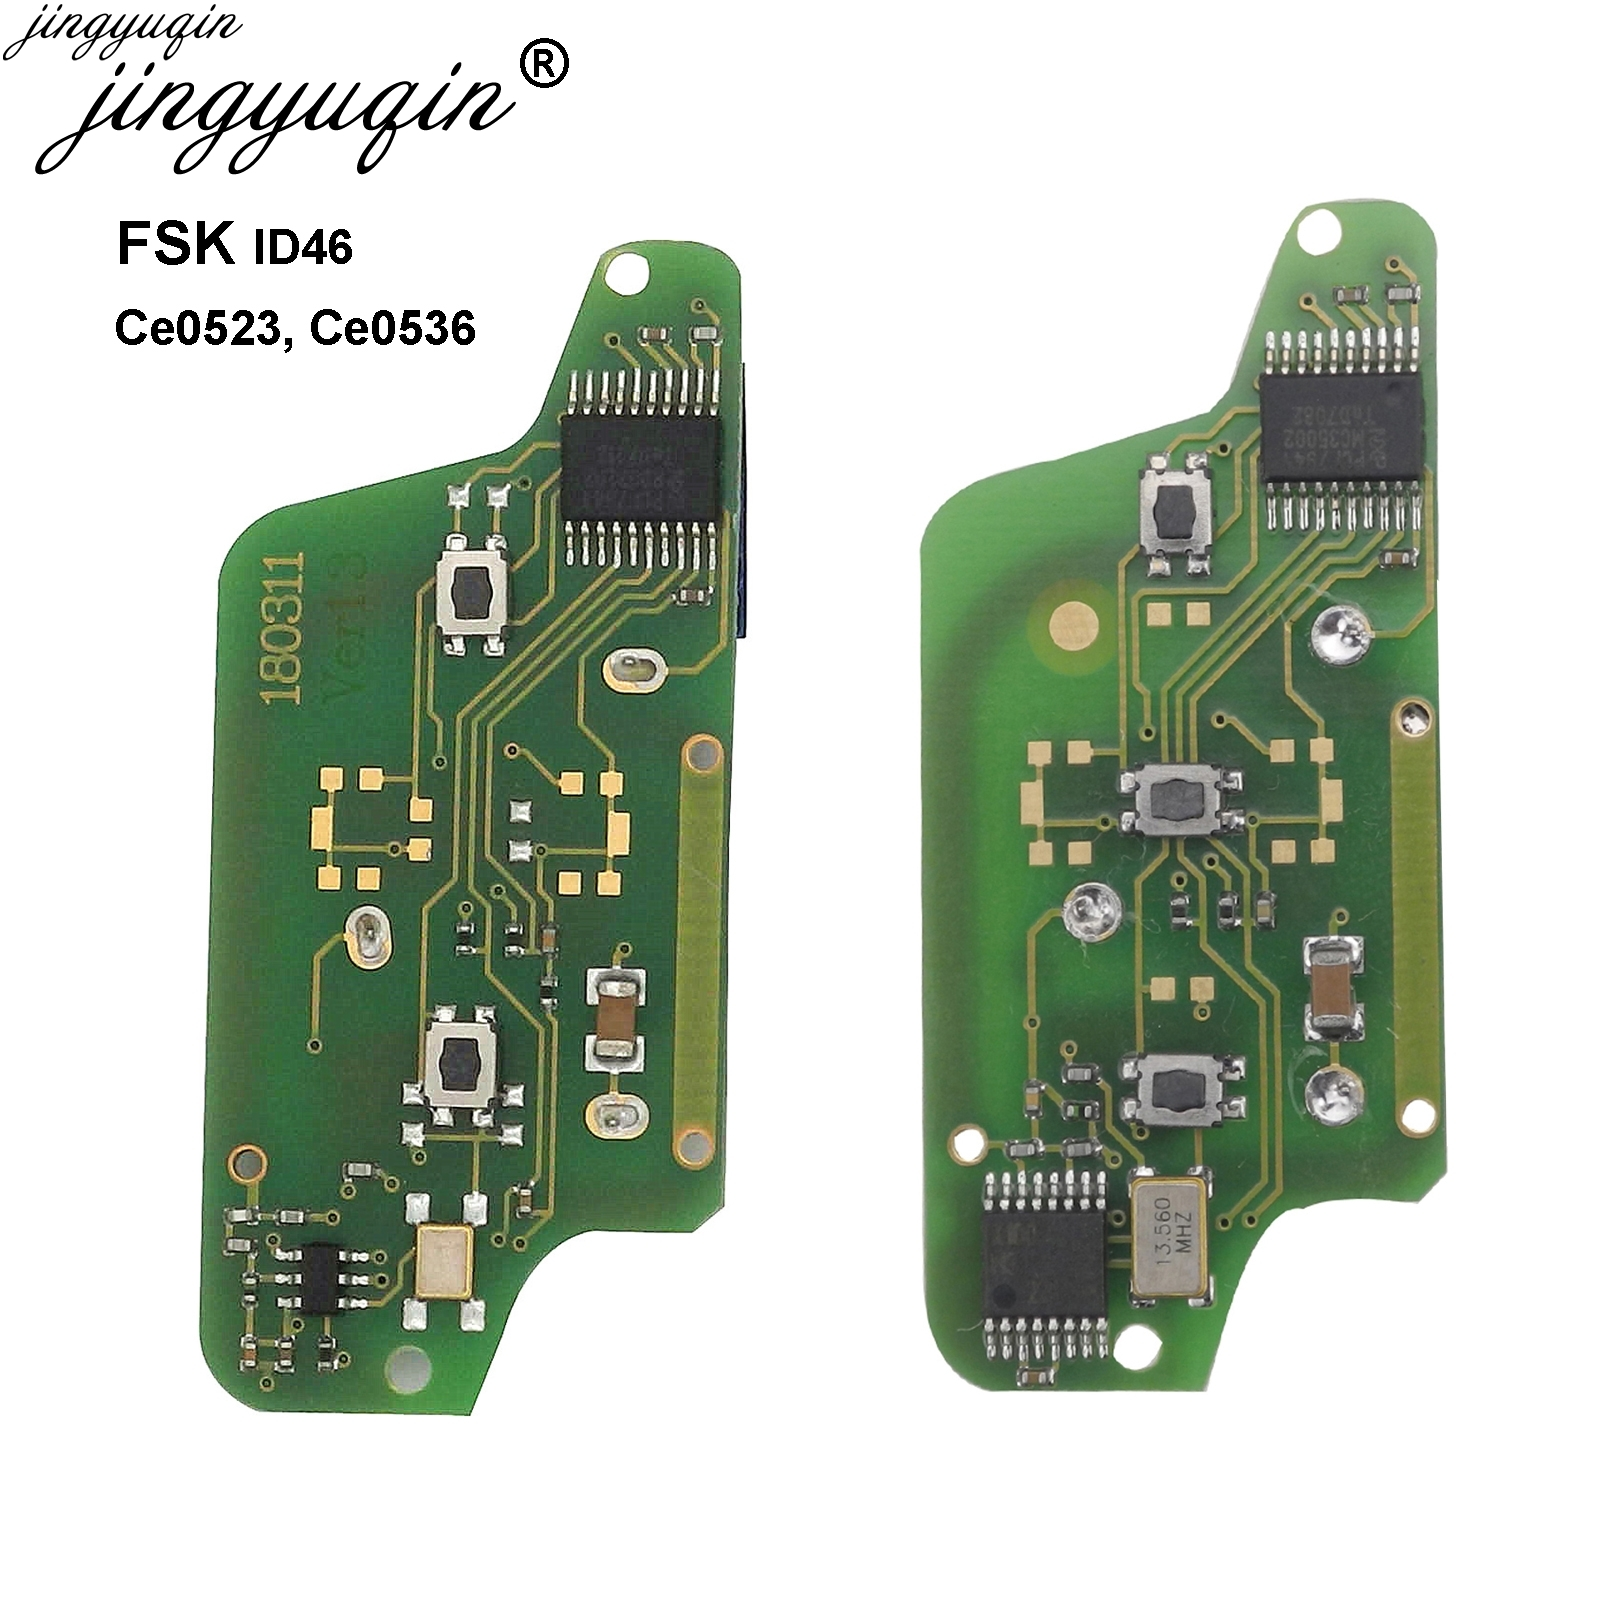 Jingyuqin FSK 434MHz For <font><b>Peugeot</b></font> 207 <font><b>208</b></font> 307 308 408 For Cirtroen C2 C3 C4 Picasso With ID46 PCF7961-ce0536, PCF7941-ce0523 image